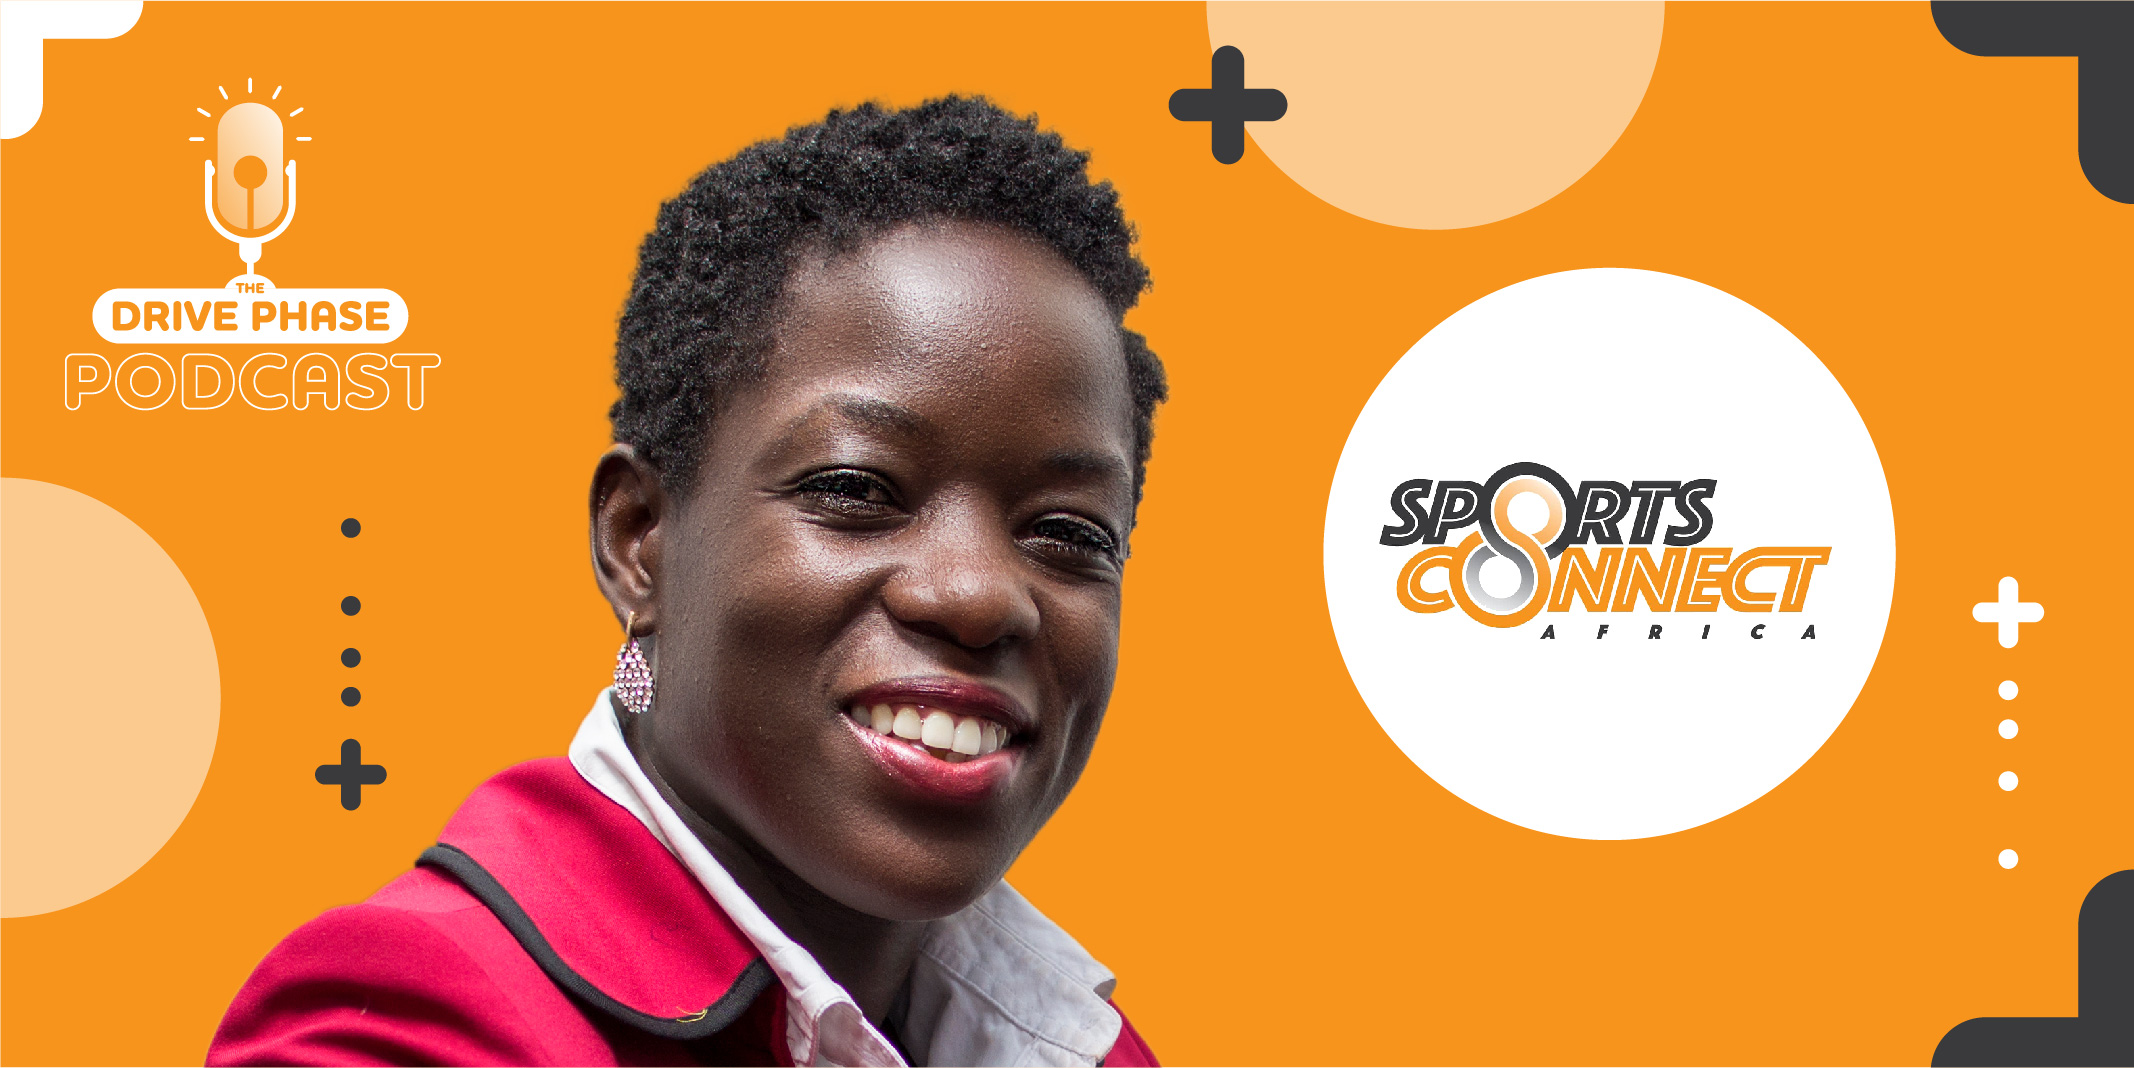 Sports Connect Africa